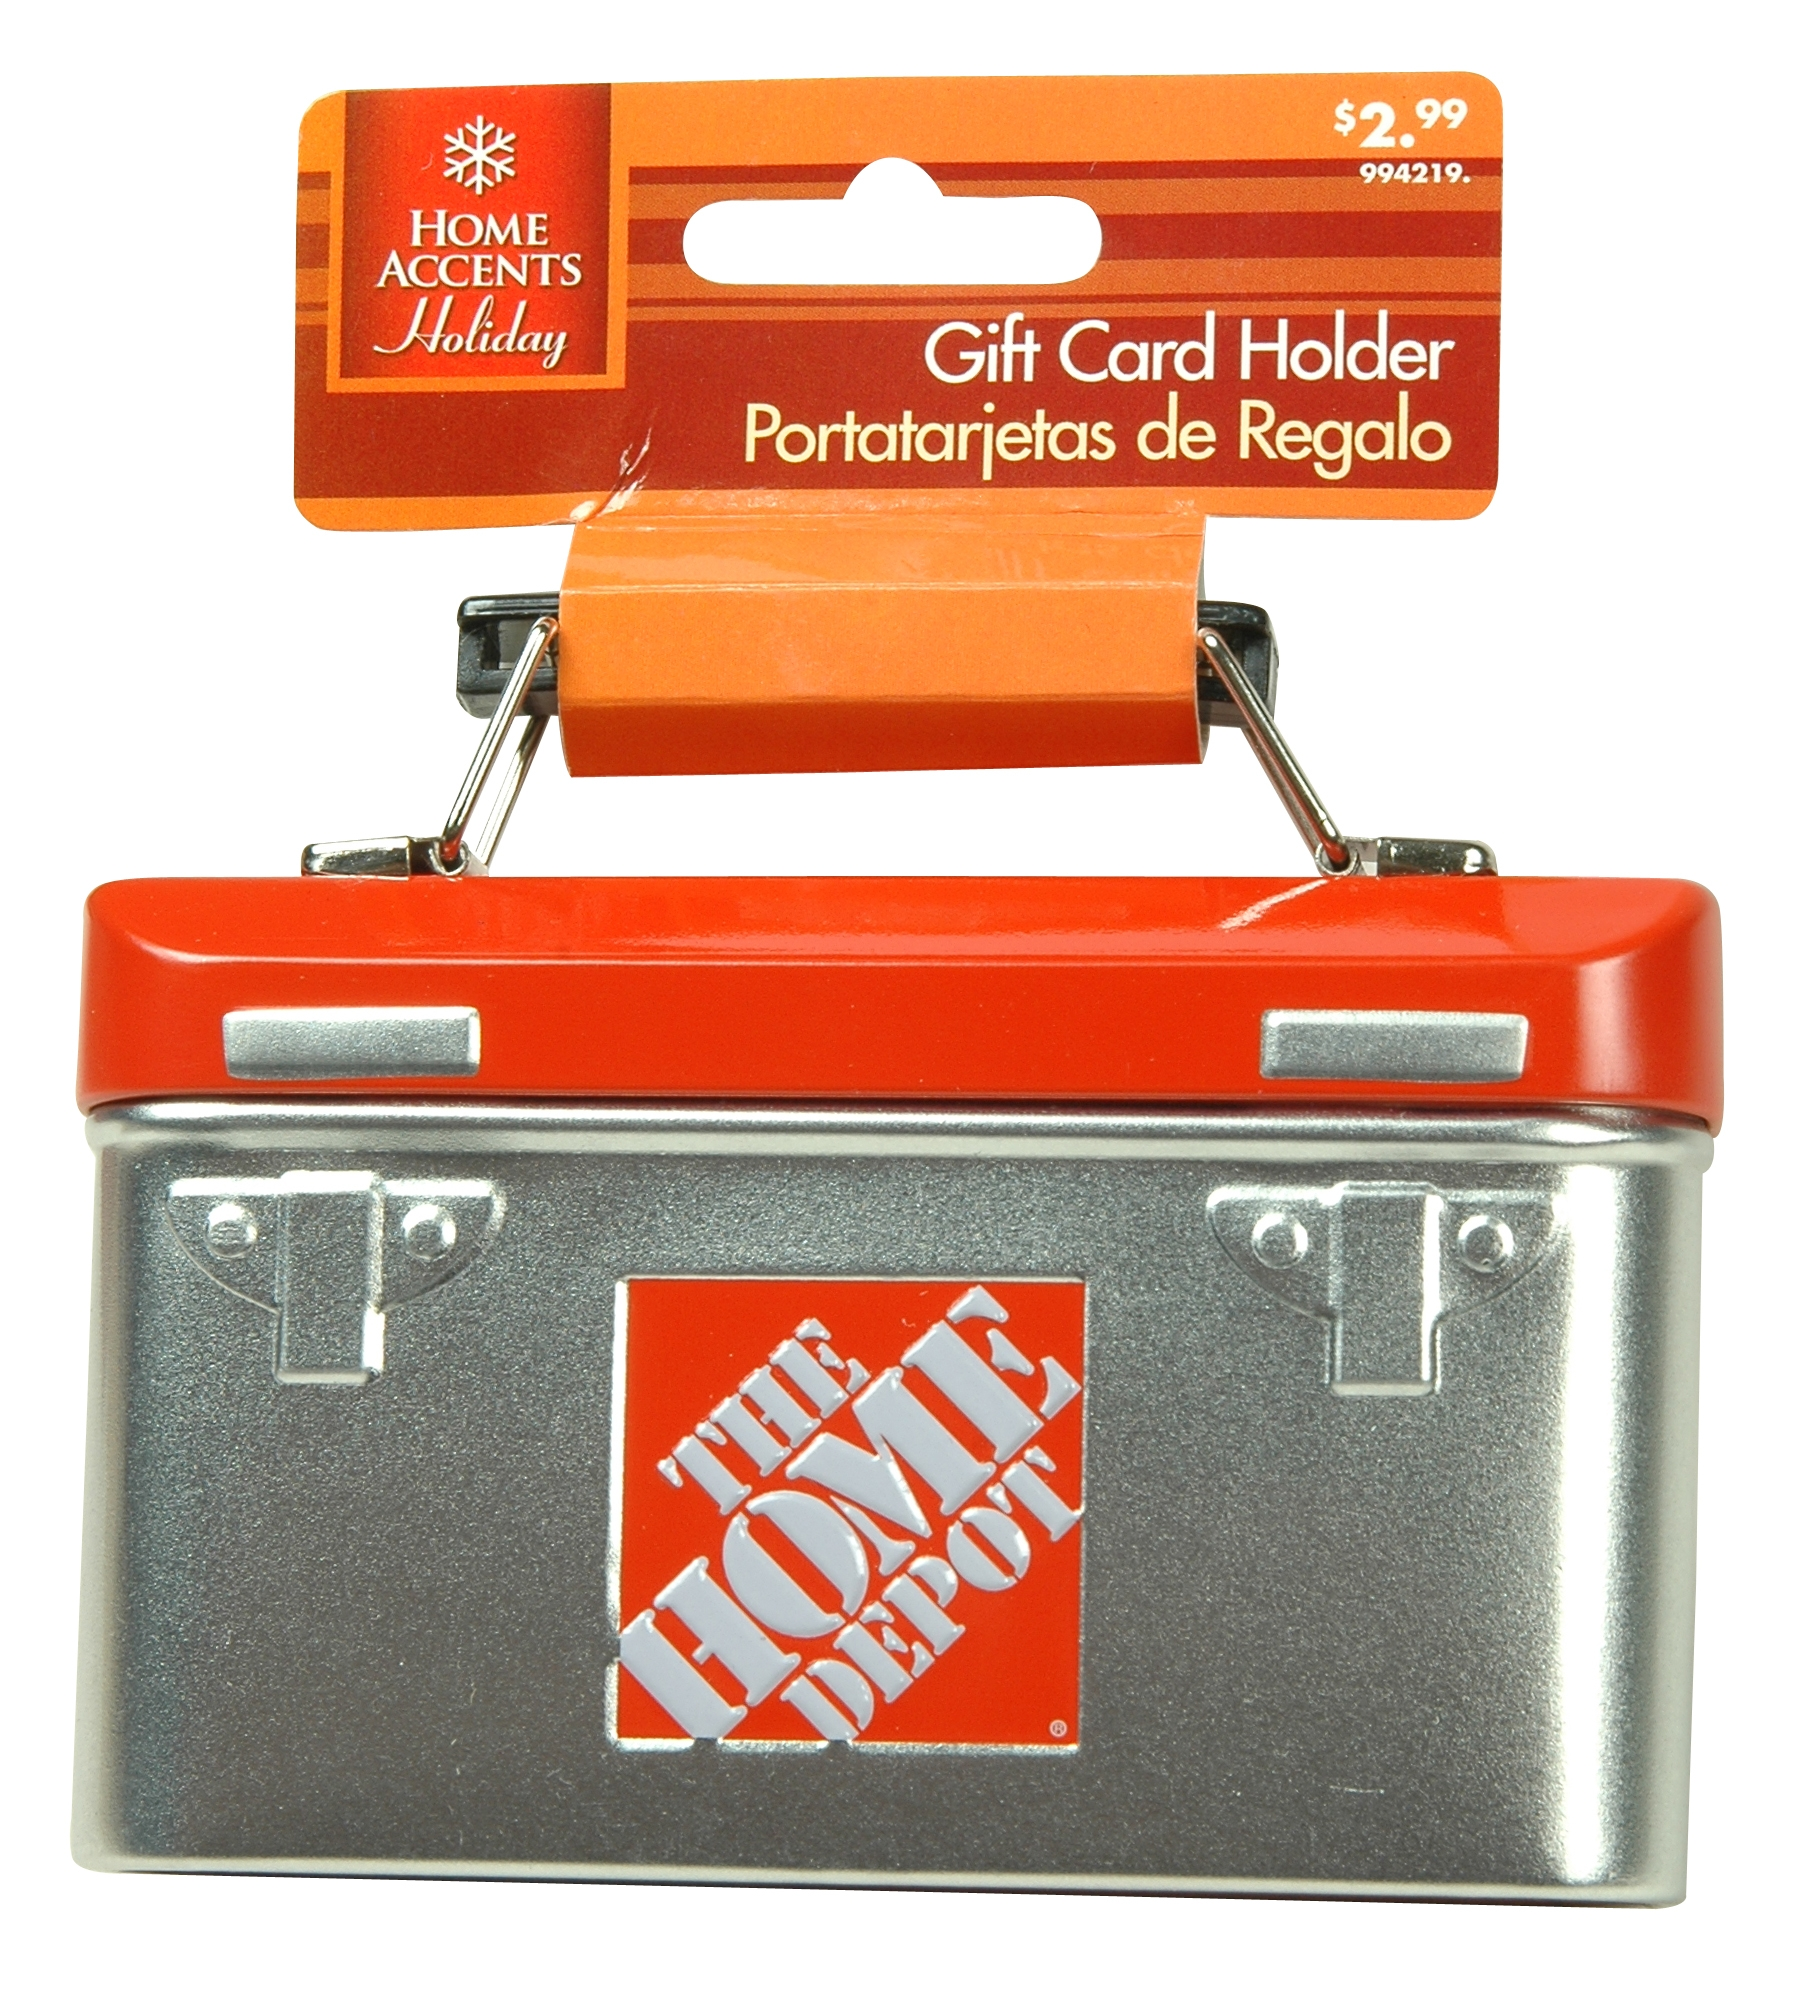 NOW CLOSED: Giveaway: $100 Home Depot Gift Card Ends 12/14